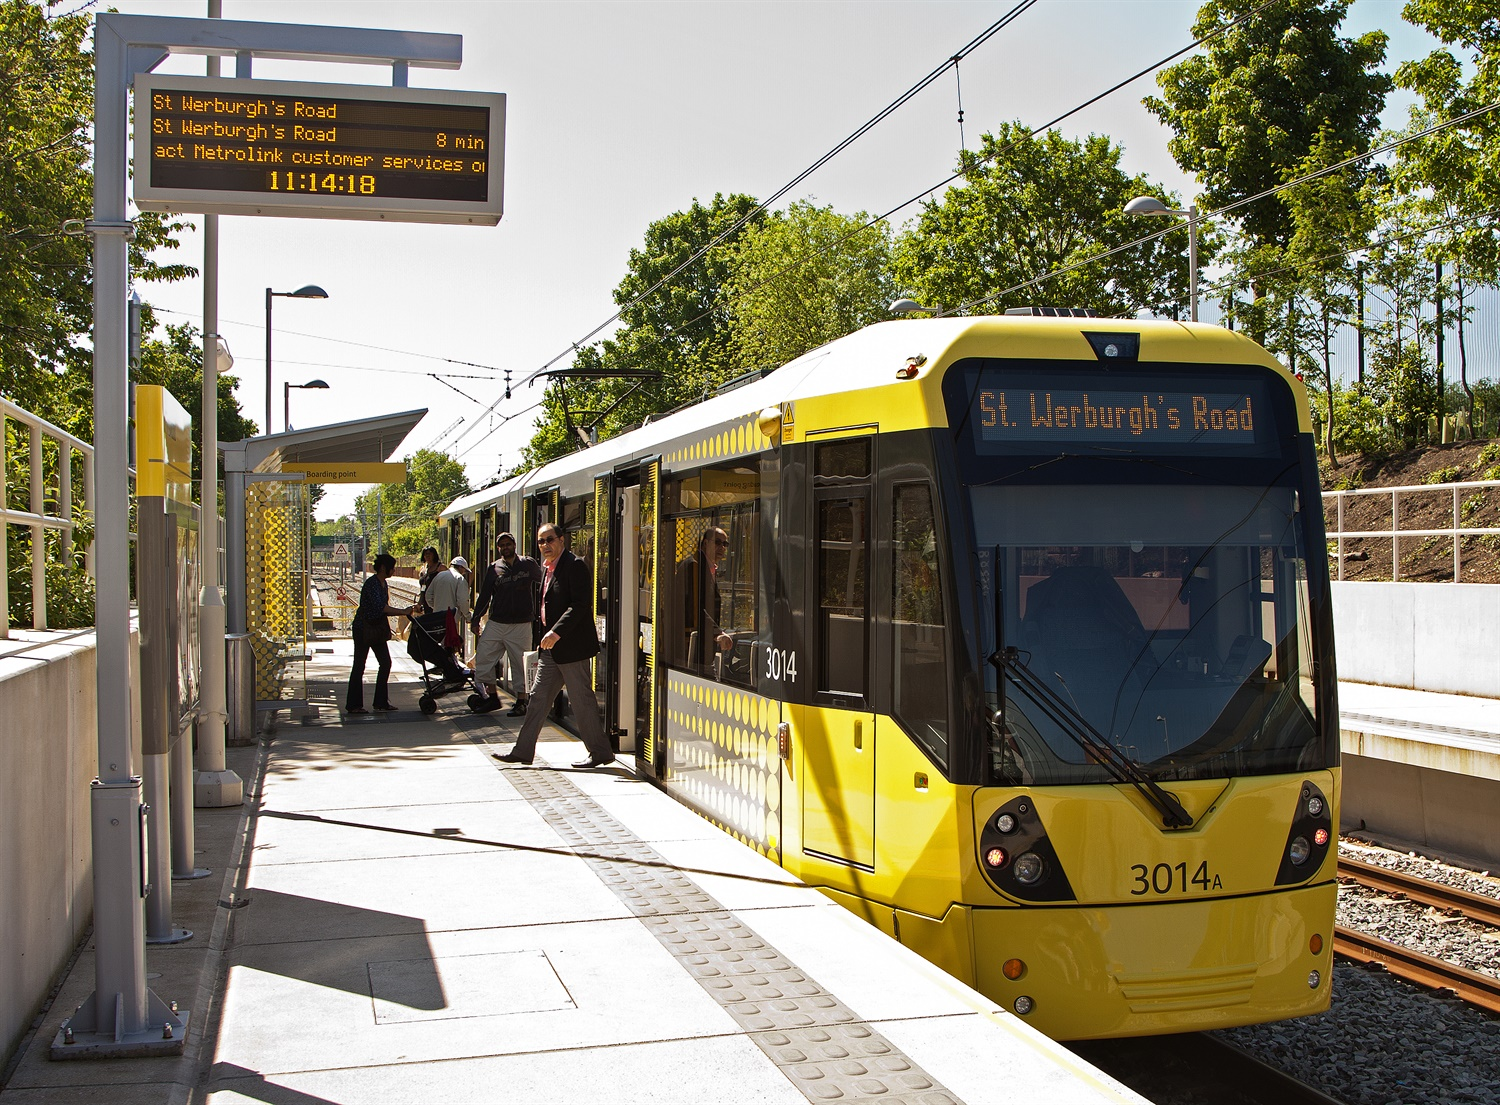 Exclusive: Fare-dodging on Metrolink costs £8m in three years